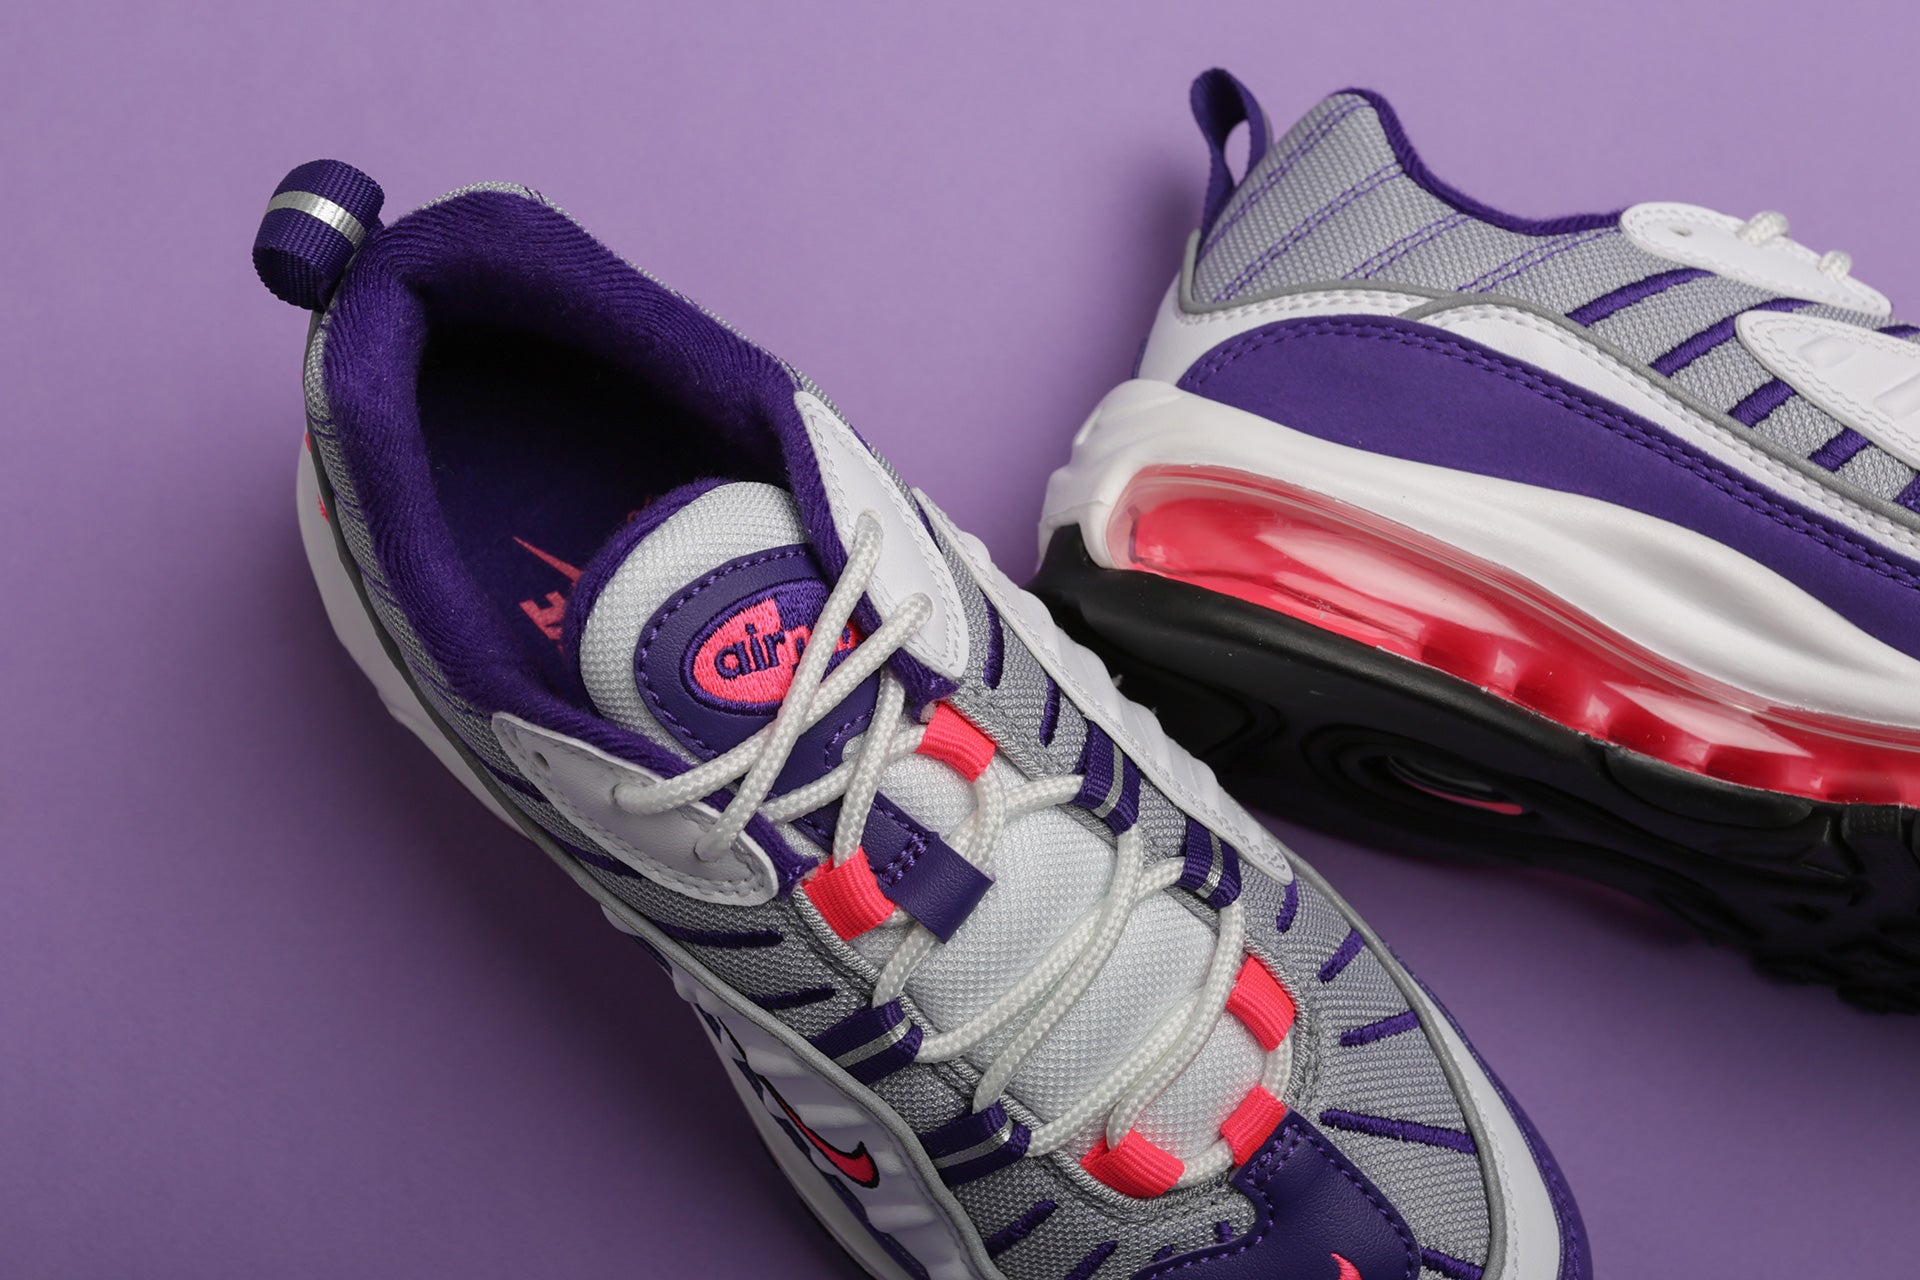 Nike WMNS Air Max 98 Premium - White/Racer Pink/Reflect Silver/Black #AH6799-110-Preorder Item-Navy Selected Shop